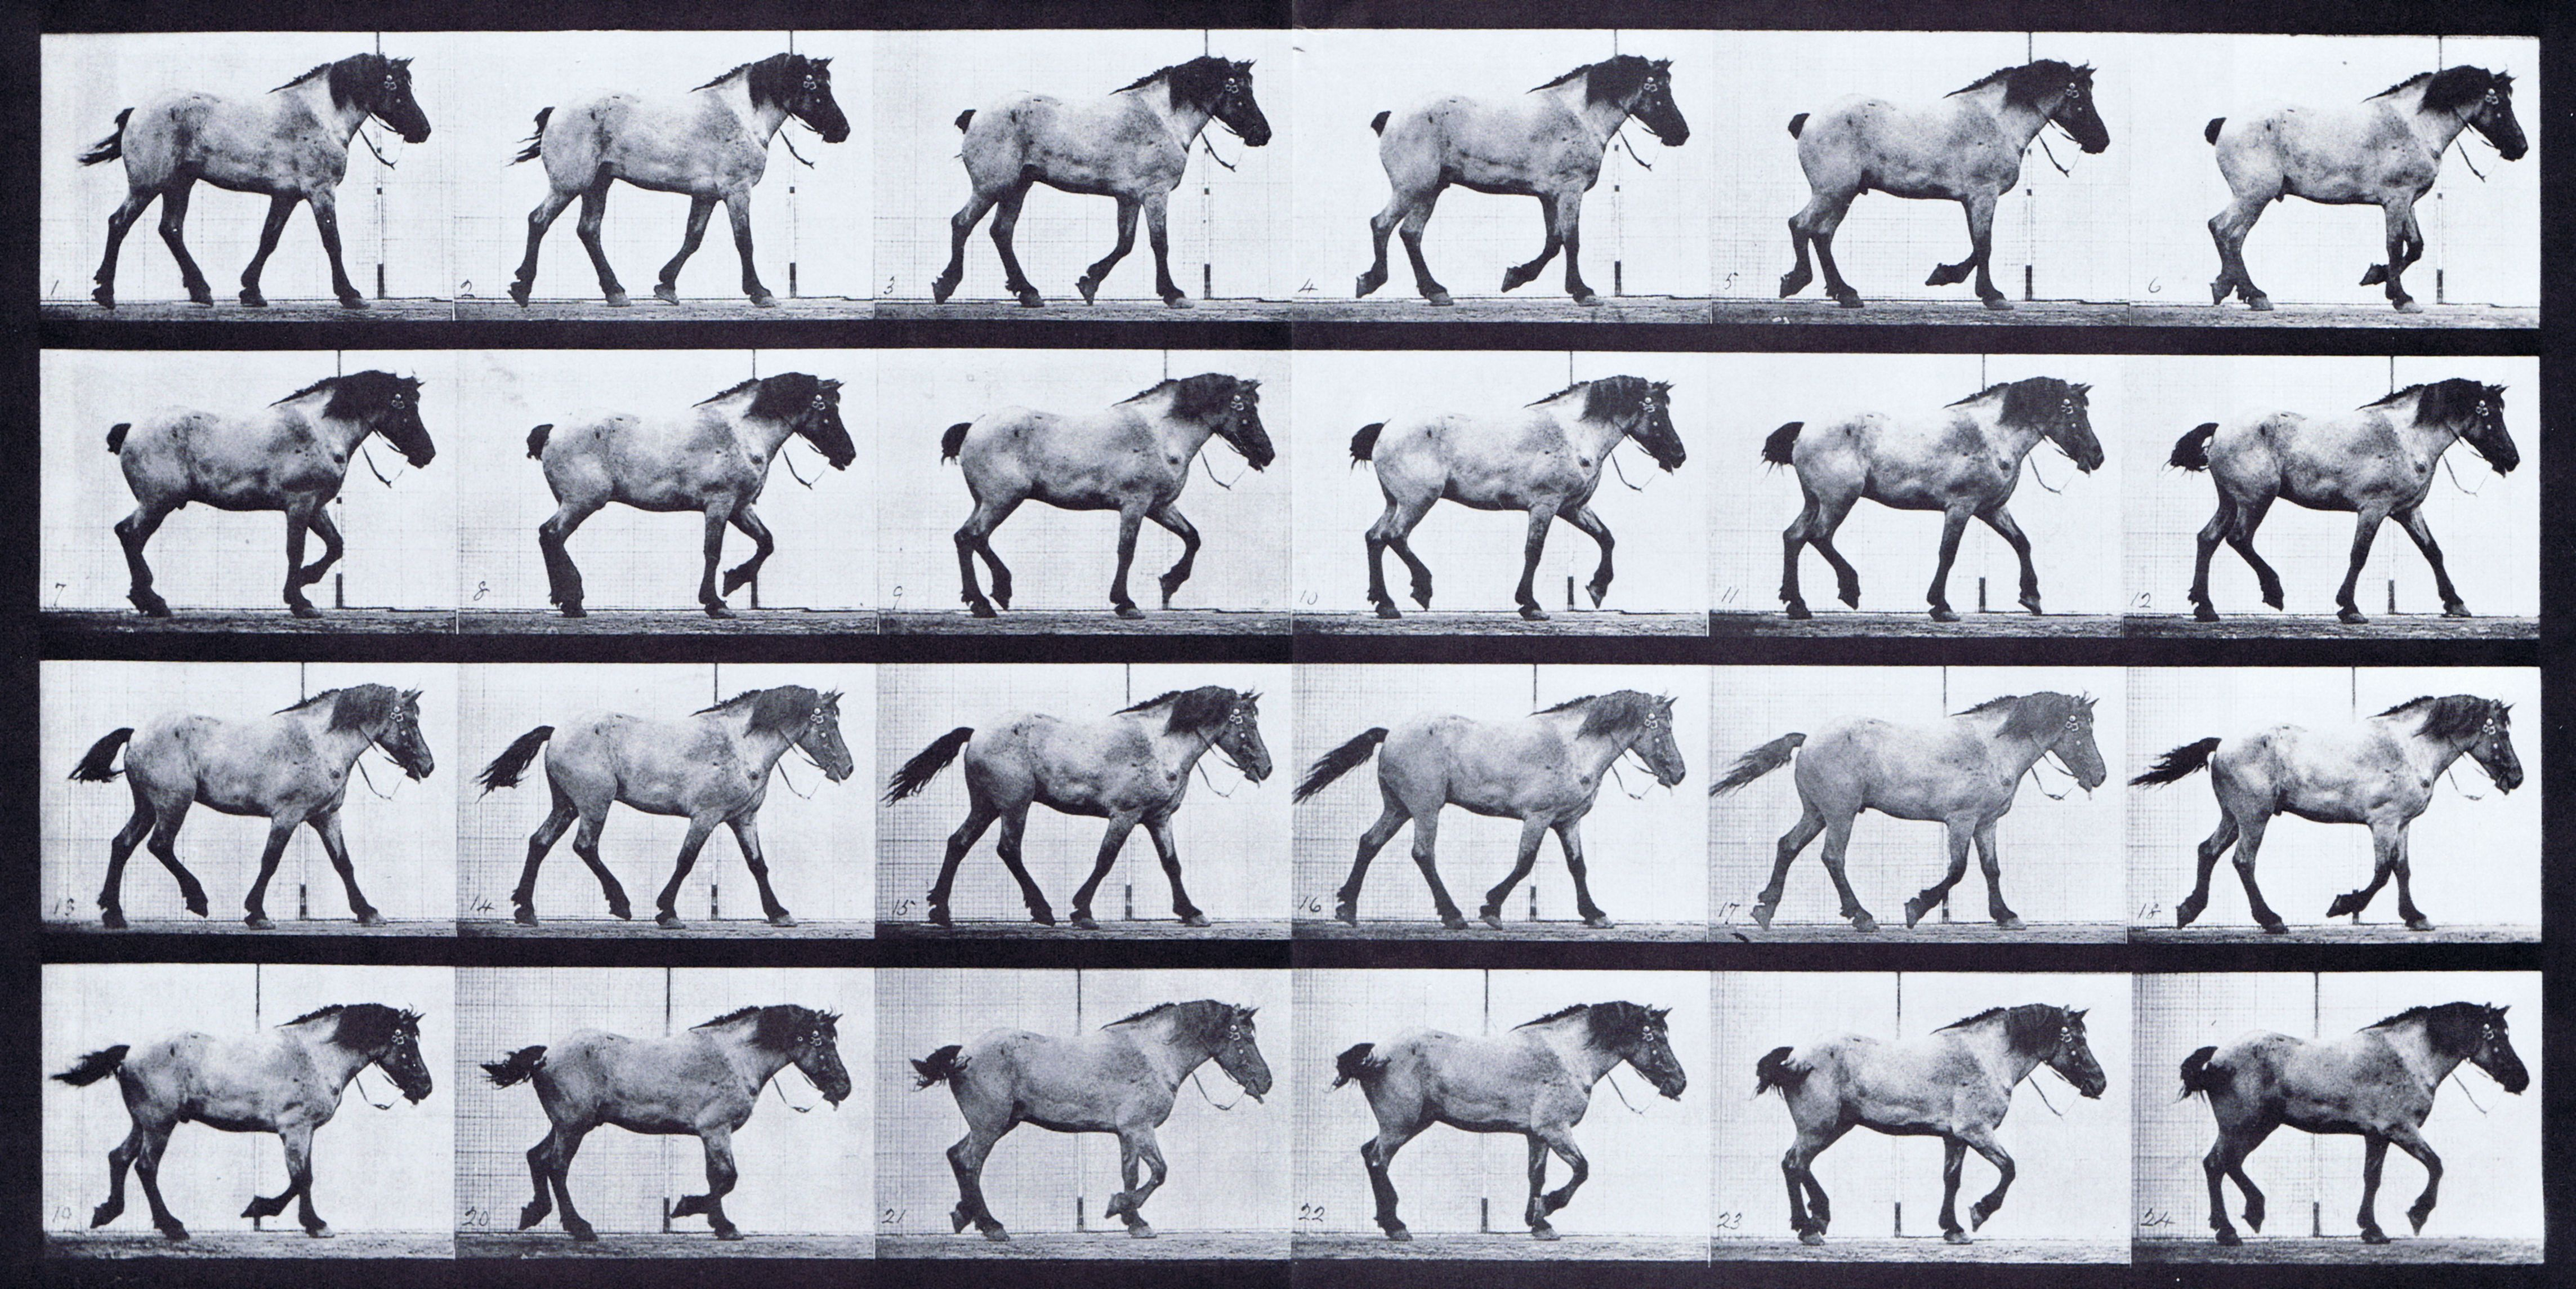 large profile view of horse walking free animation reference using muybridge plate 574 from animal locomotion [ 4575 x 2289 Pixel ]